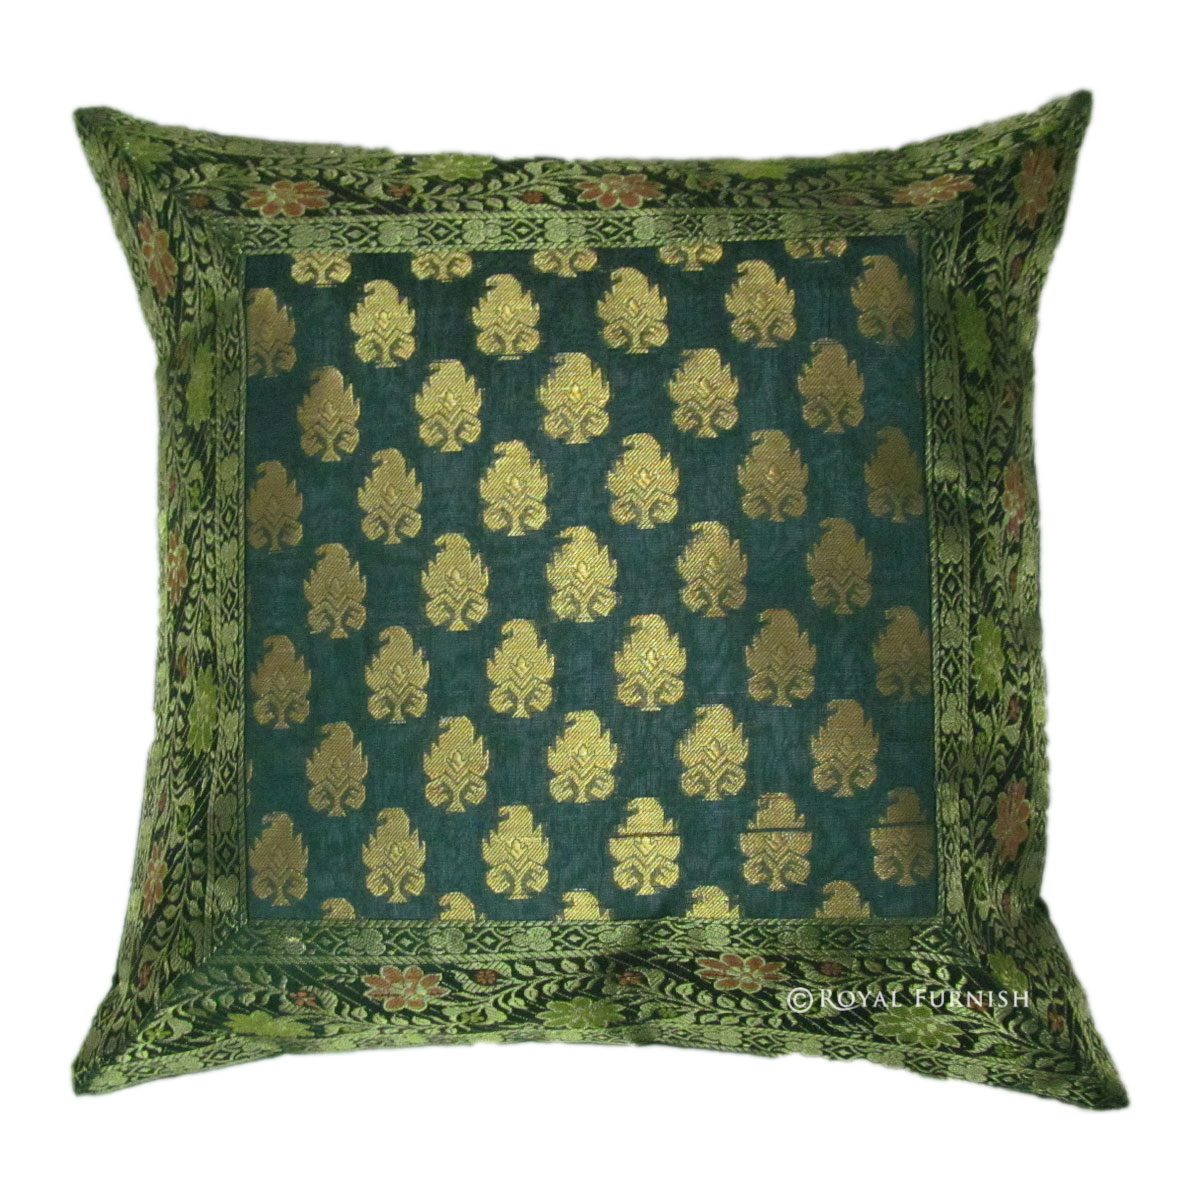 Decorative Floral Pillow Covers : Decorative Silk Brocade Throw Floral Pillow Cover - RoyalFurnish.com